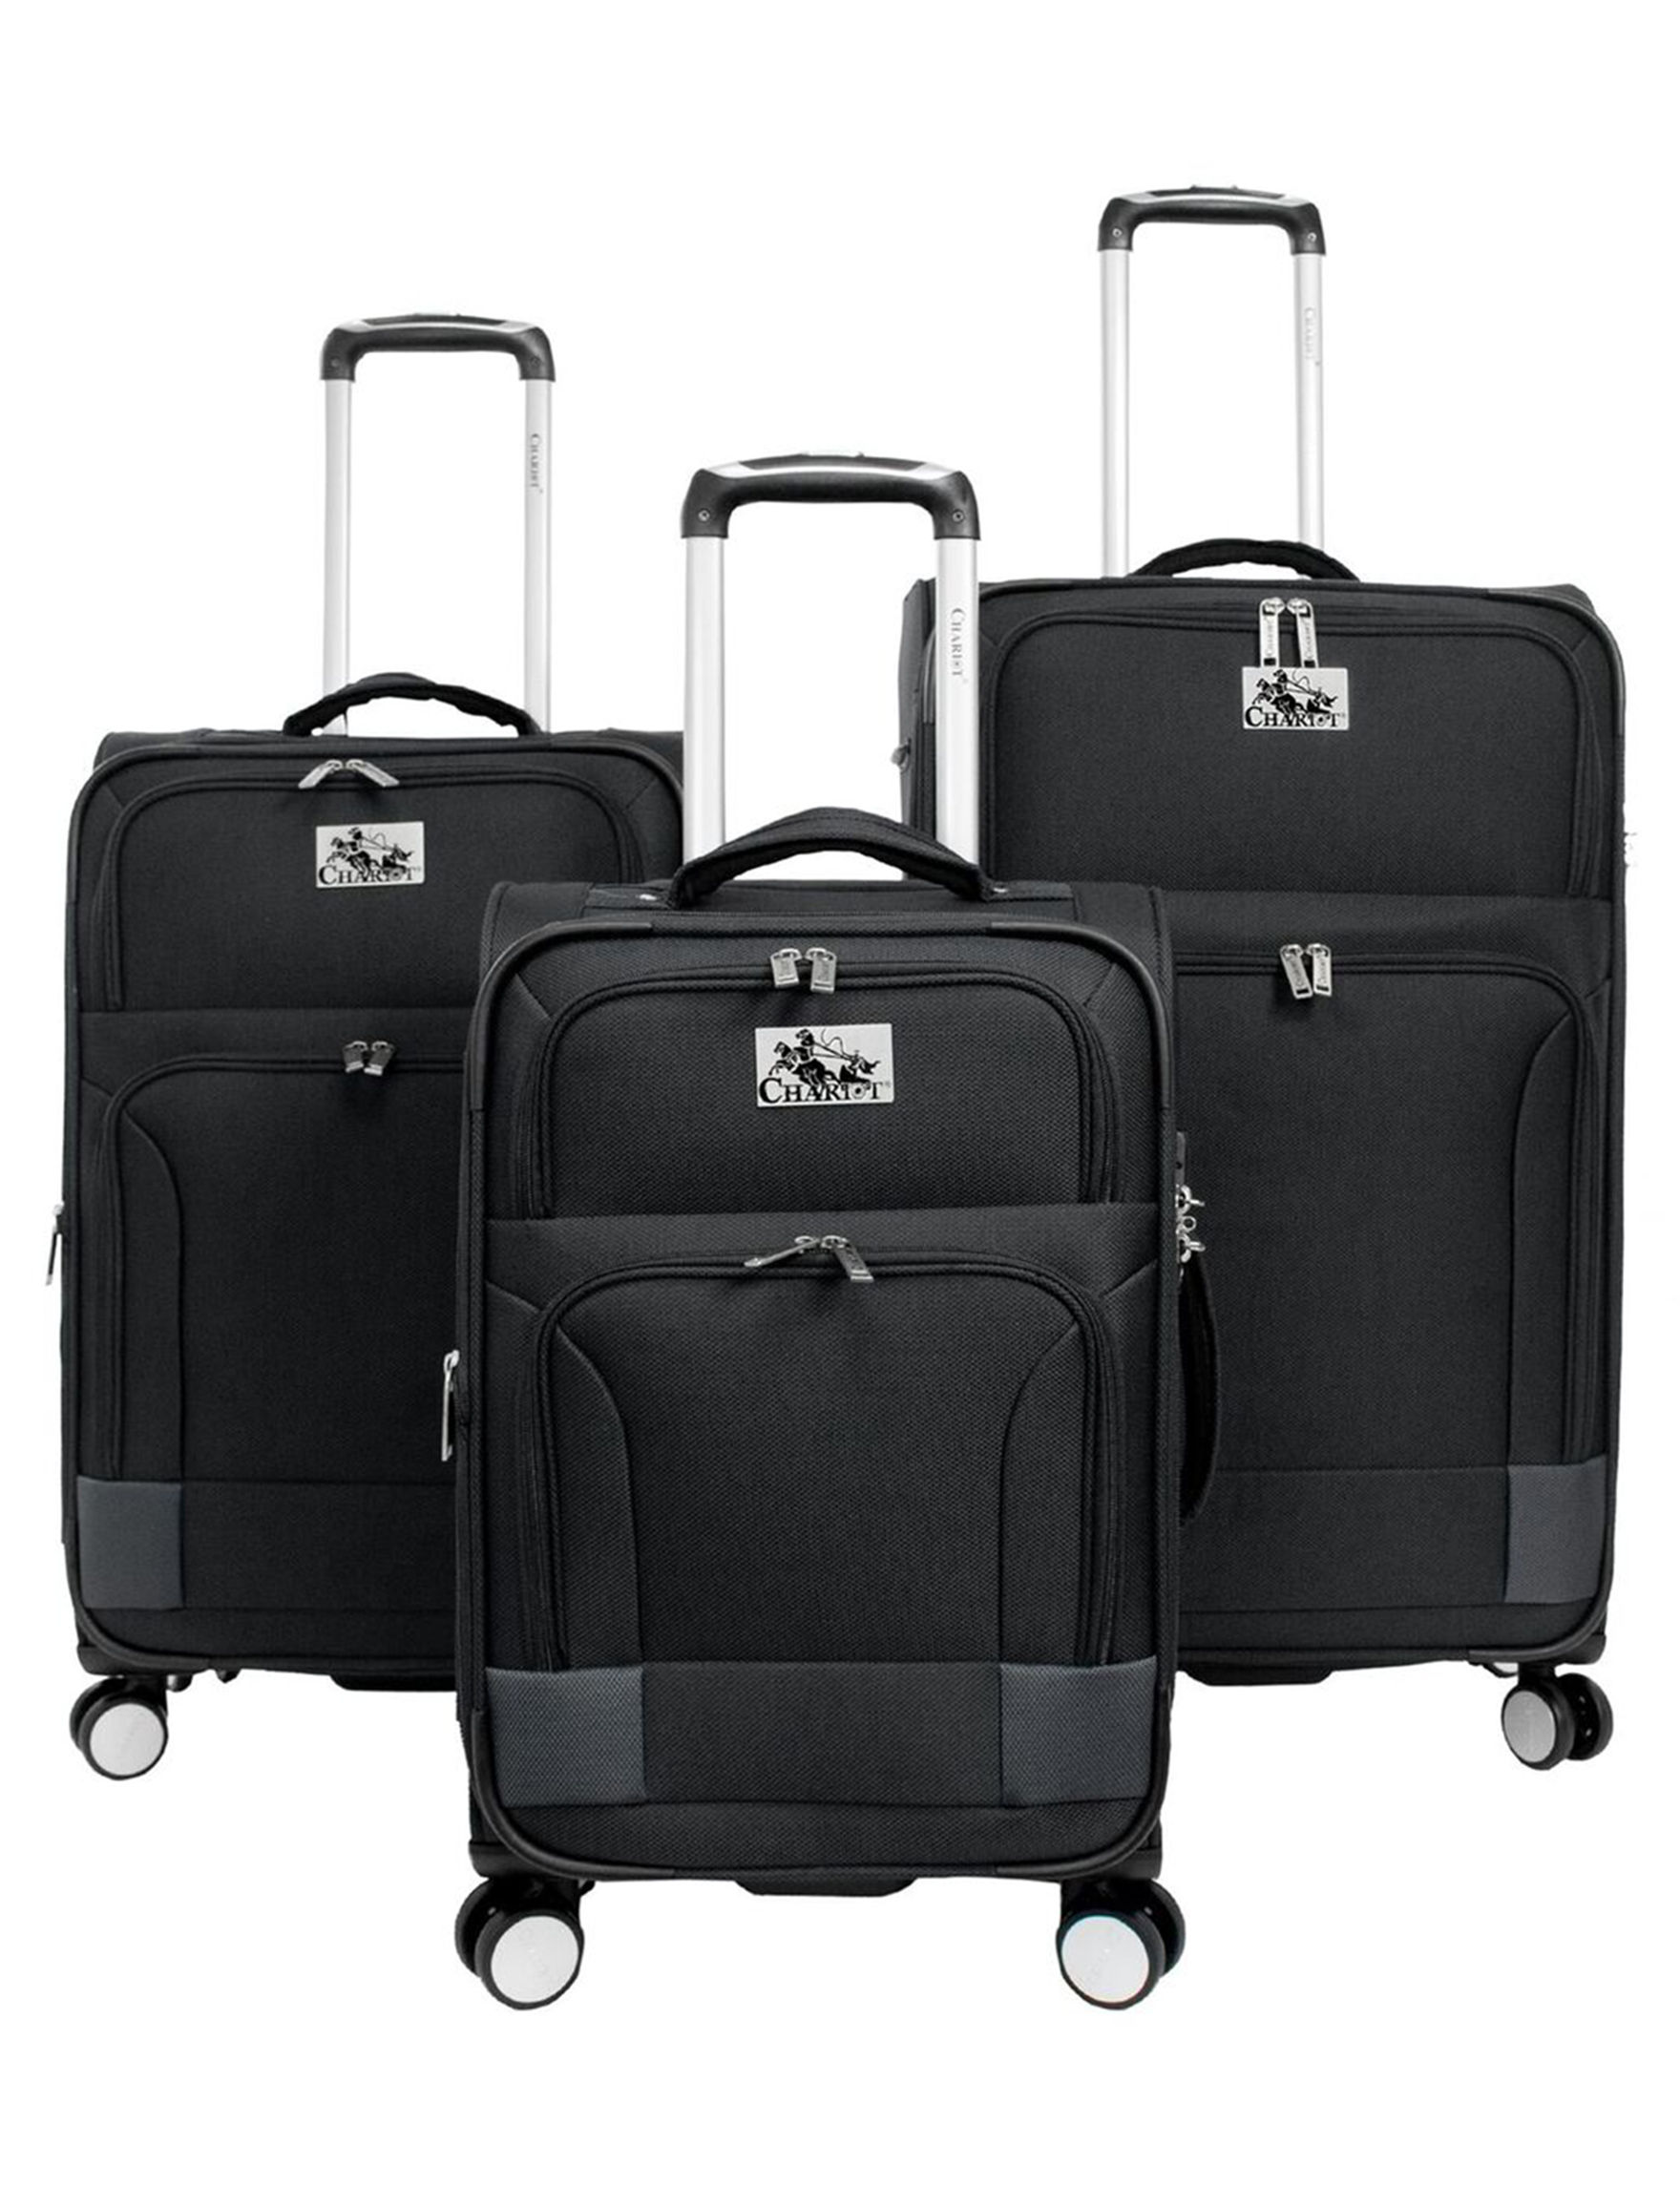 Chariot Travelware Black Hardside Upright Spinners